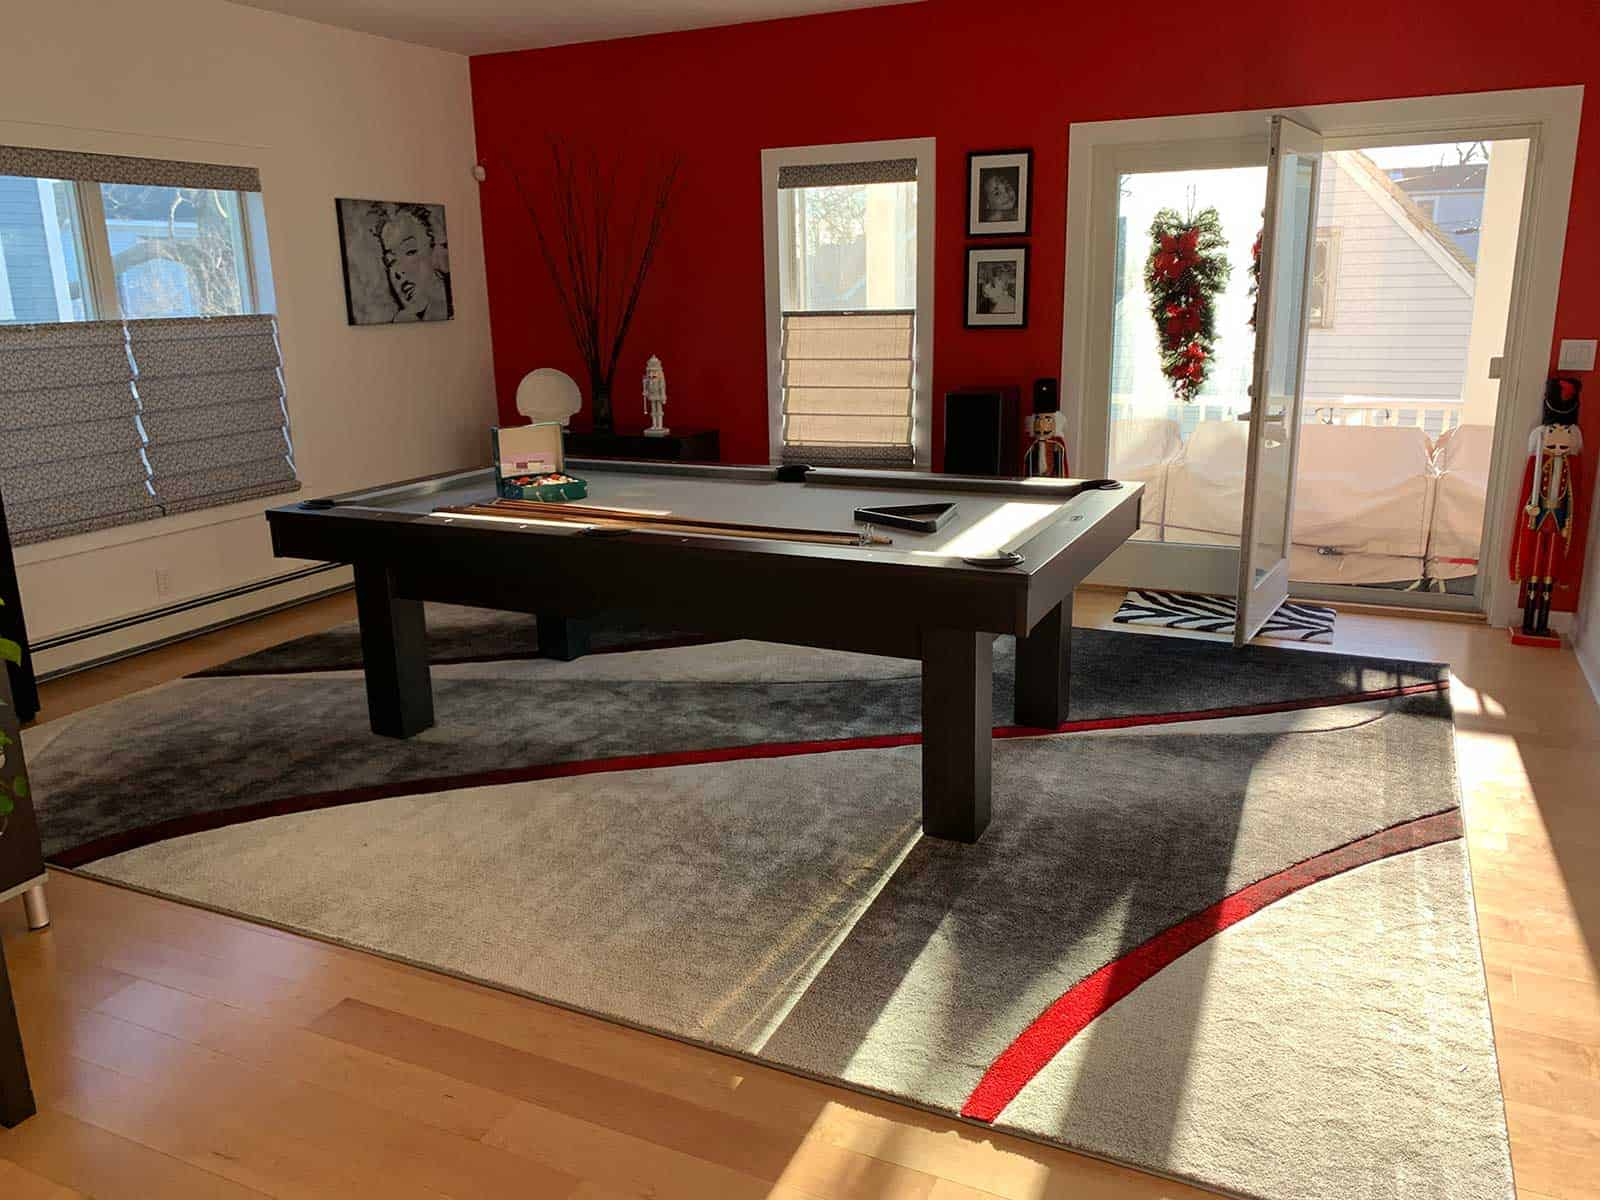 pool table in a red room